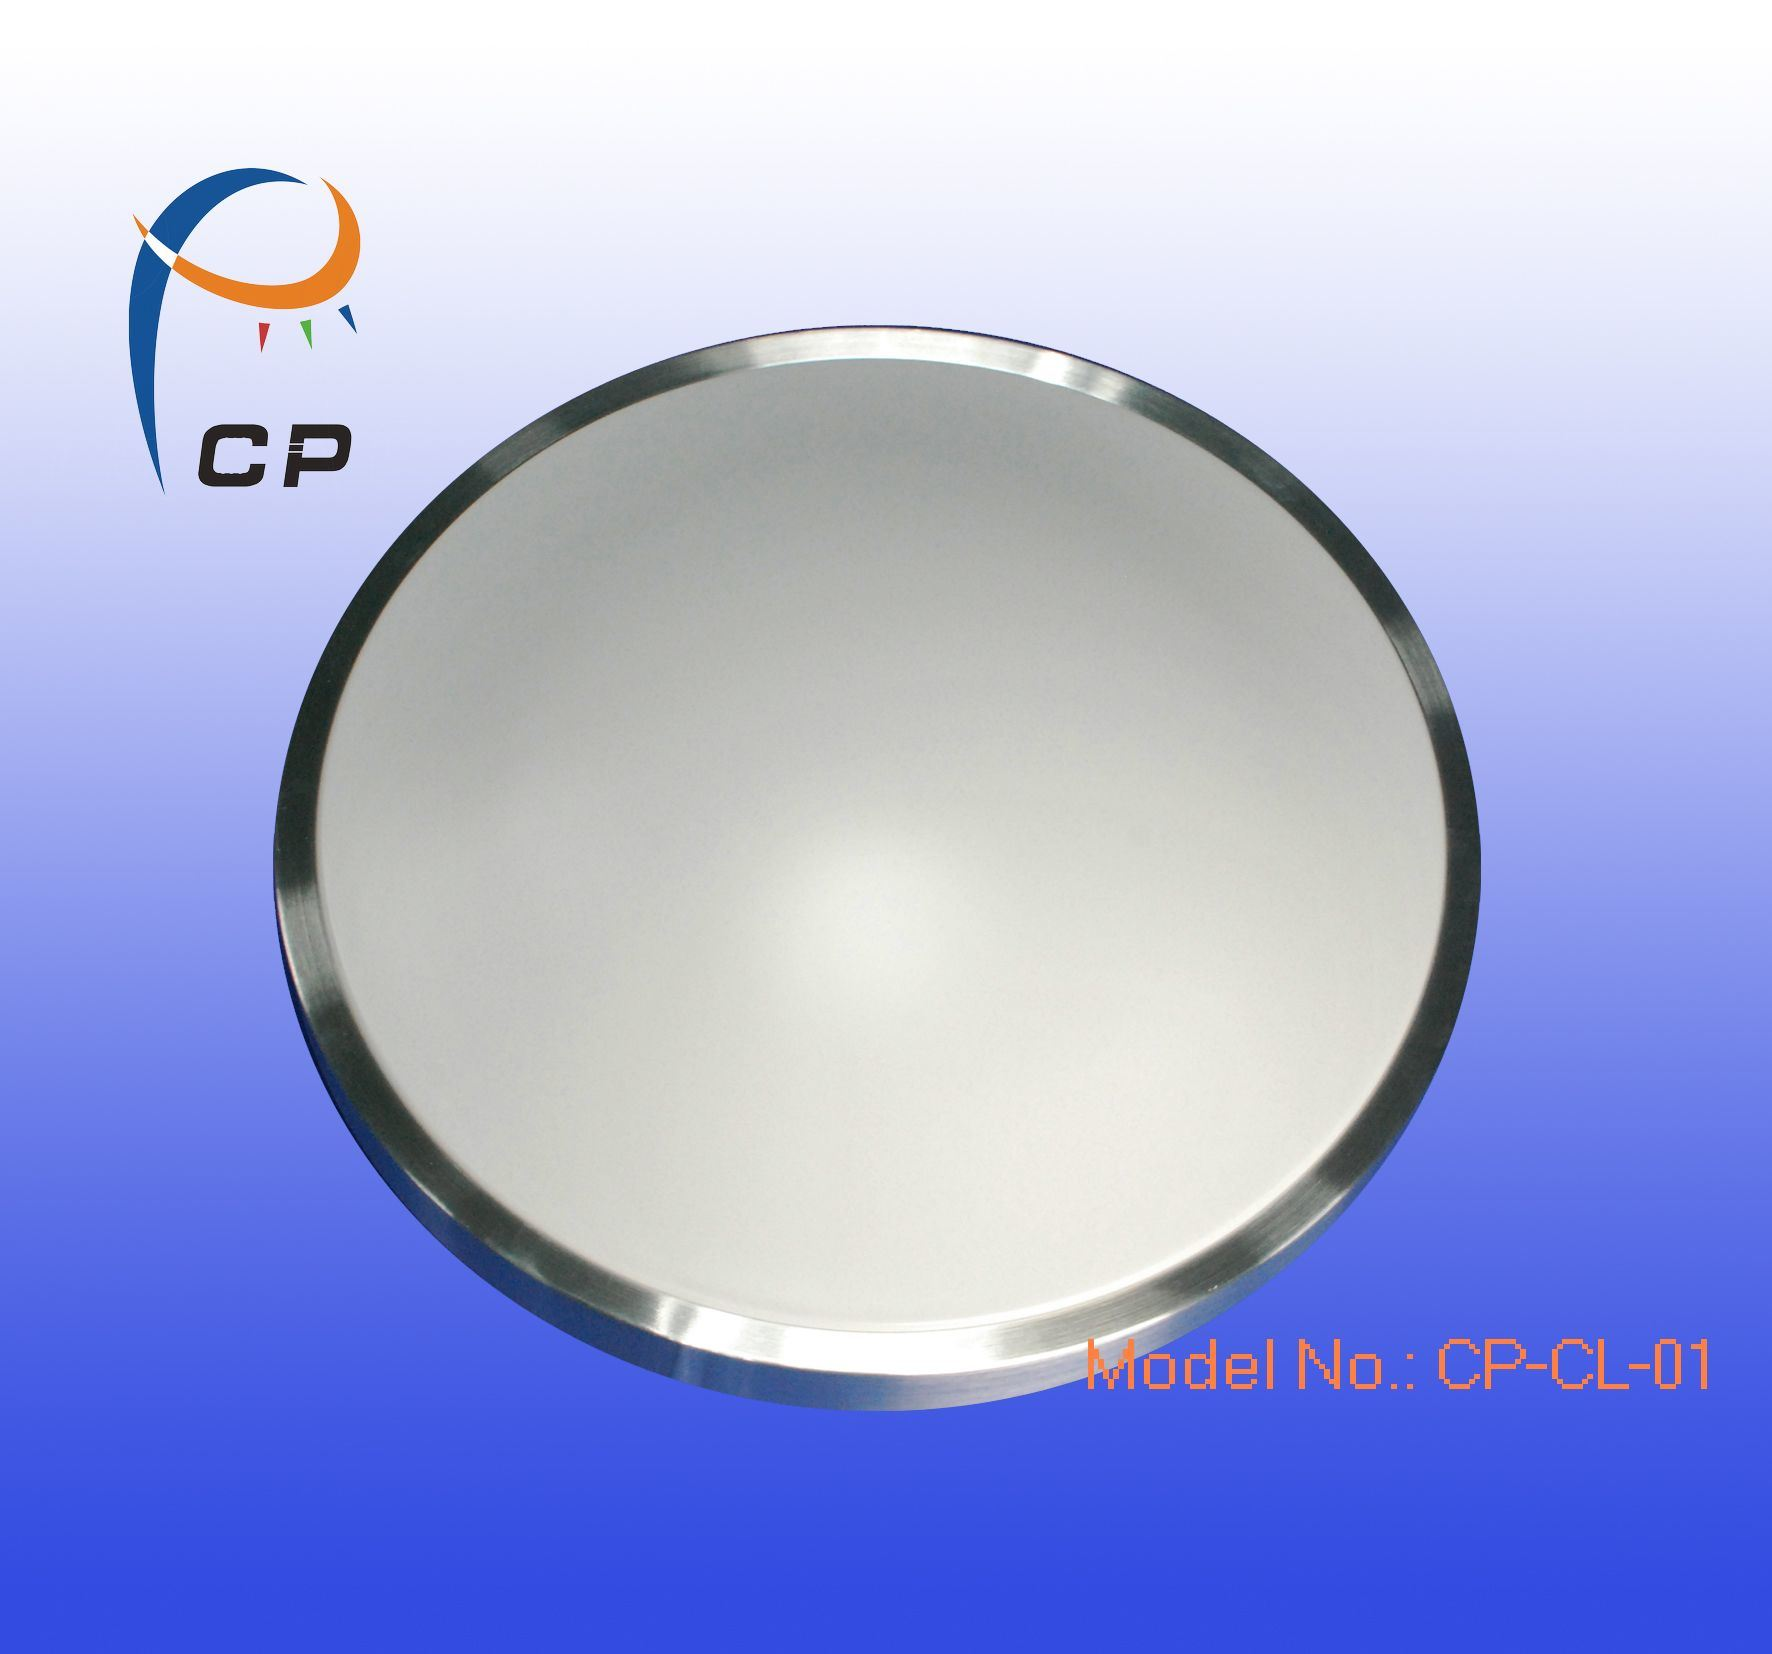 Led Ceiling Lights Made In China : China led ceiling light